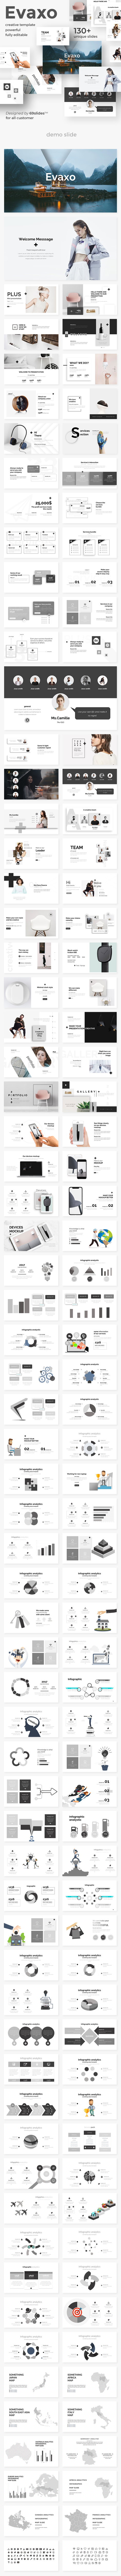 Evaxo Creative Keynote Template - Creative Keynote Templates